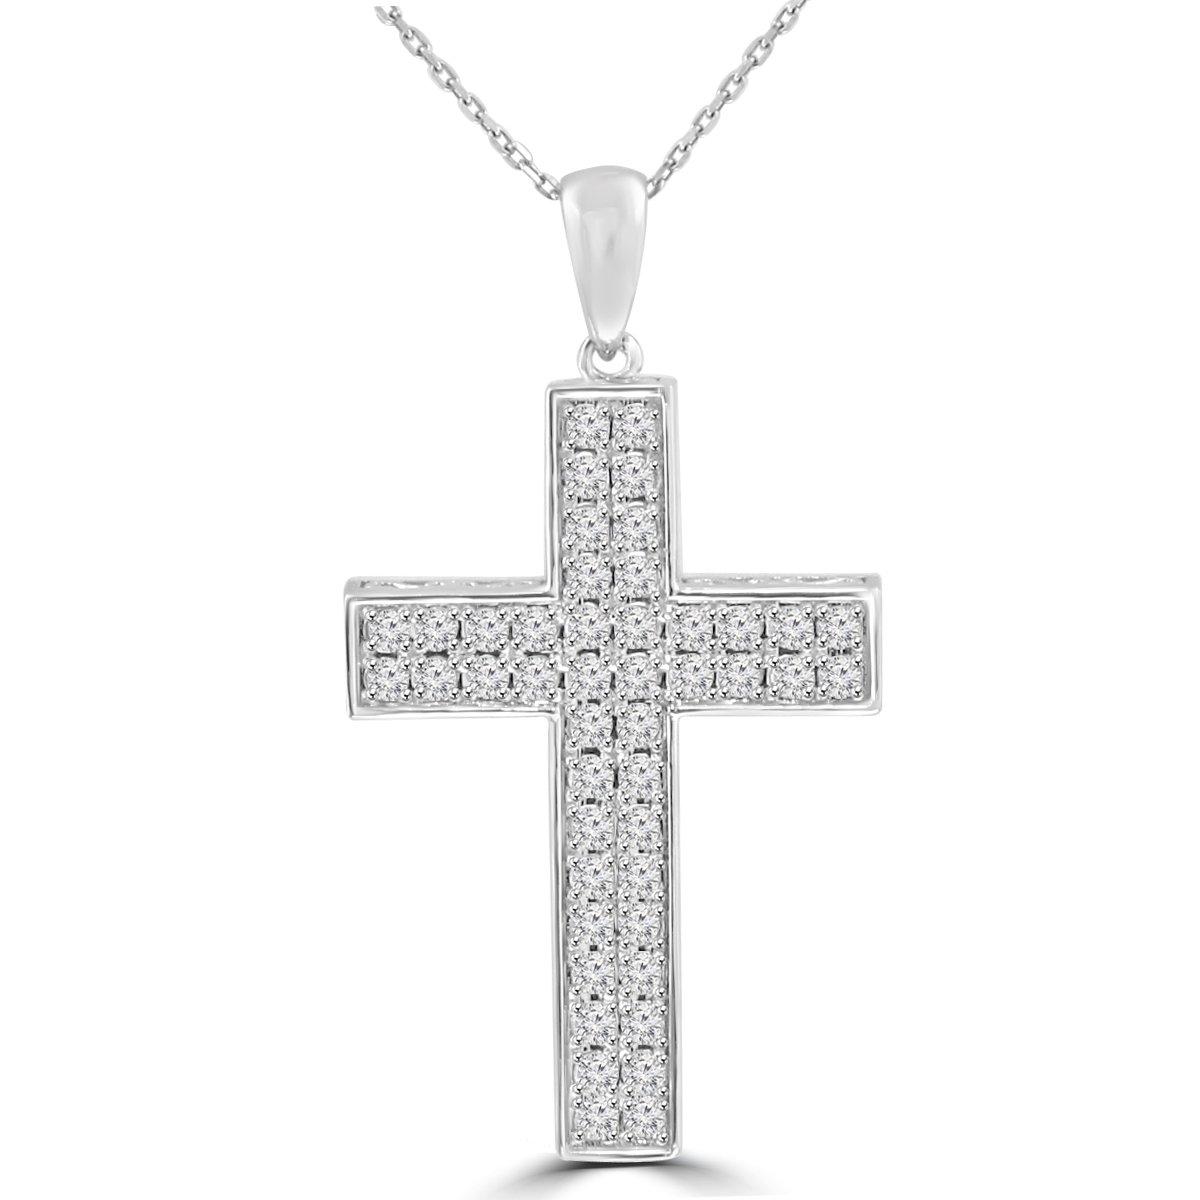 1.61 ct t.w. Round Cut Diamond Cross Pendant Necklace in 14 kt Gold